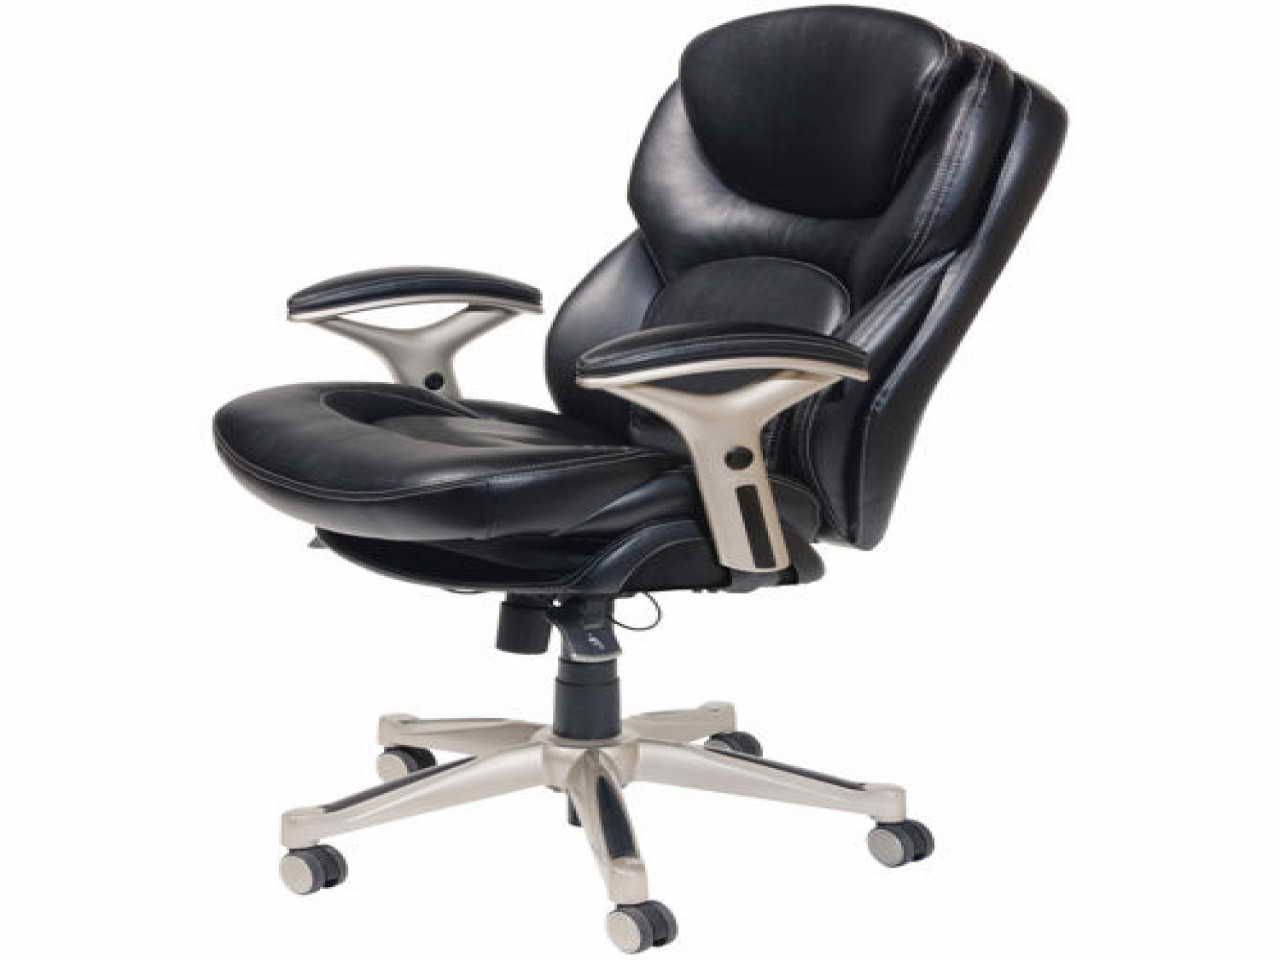 Office Chairs On Sale Costco